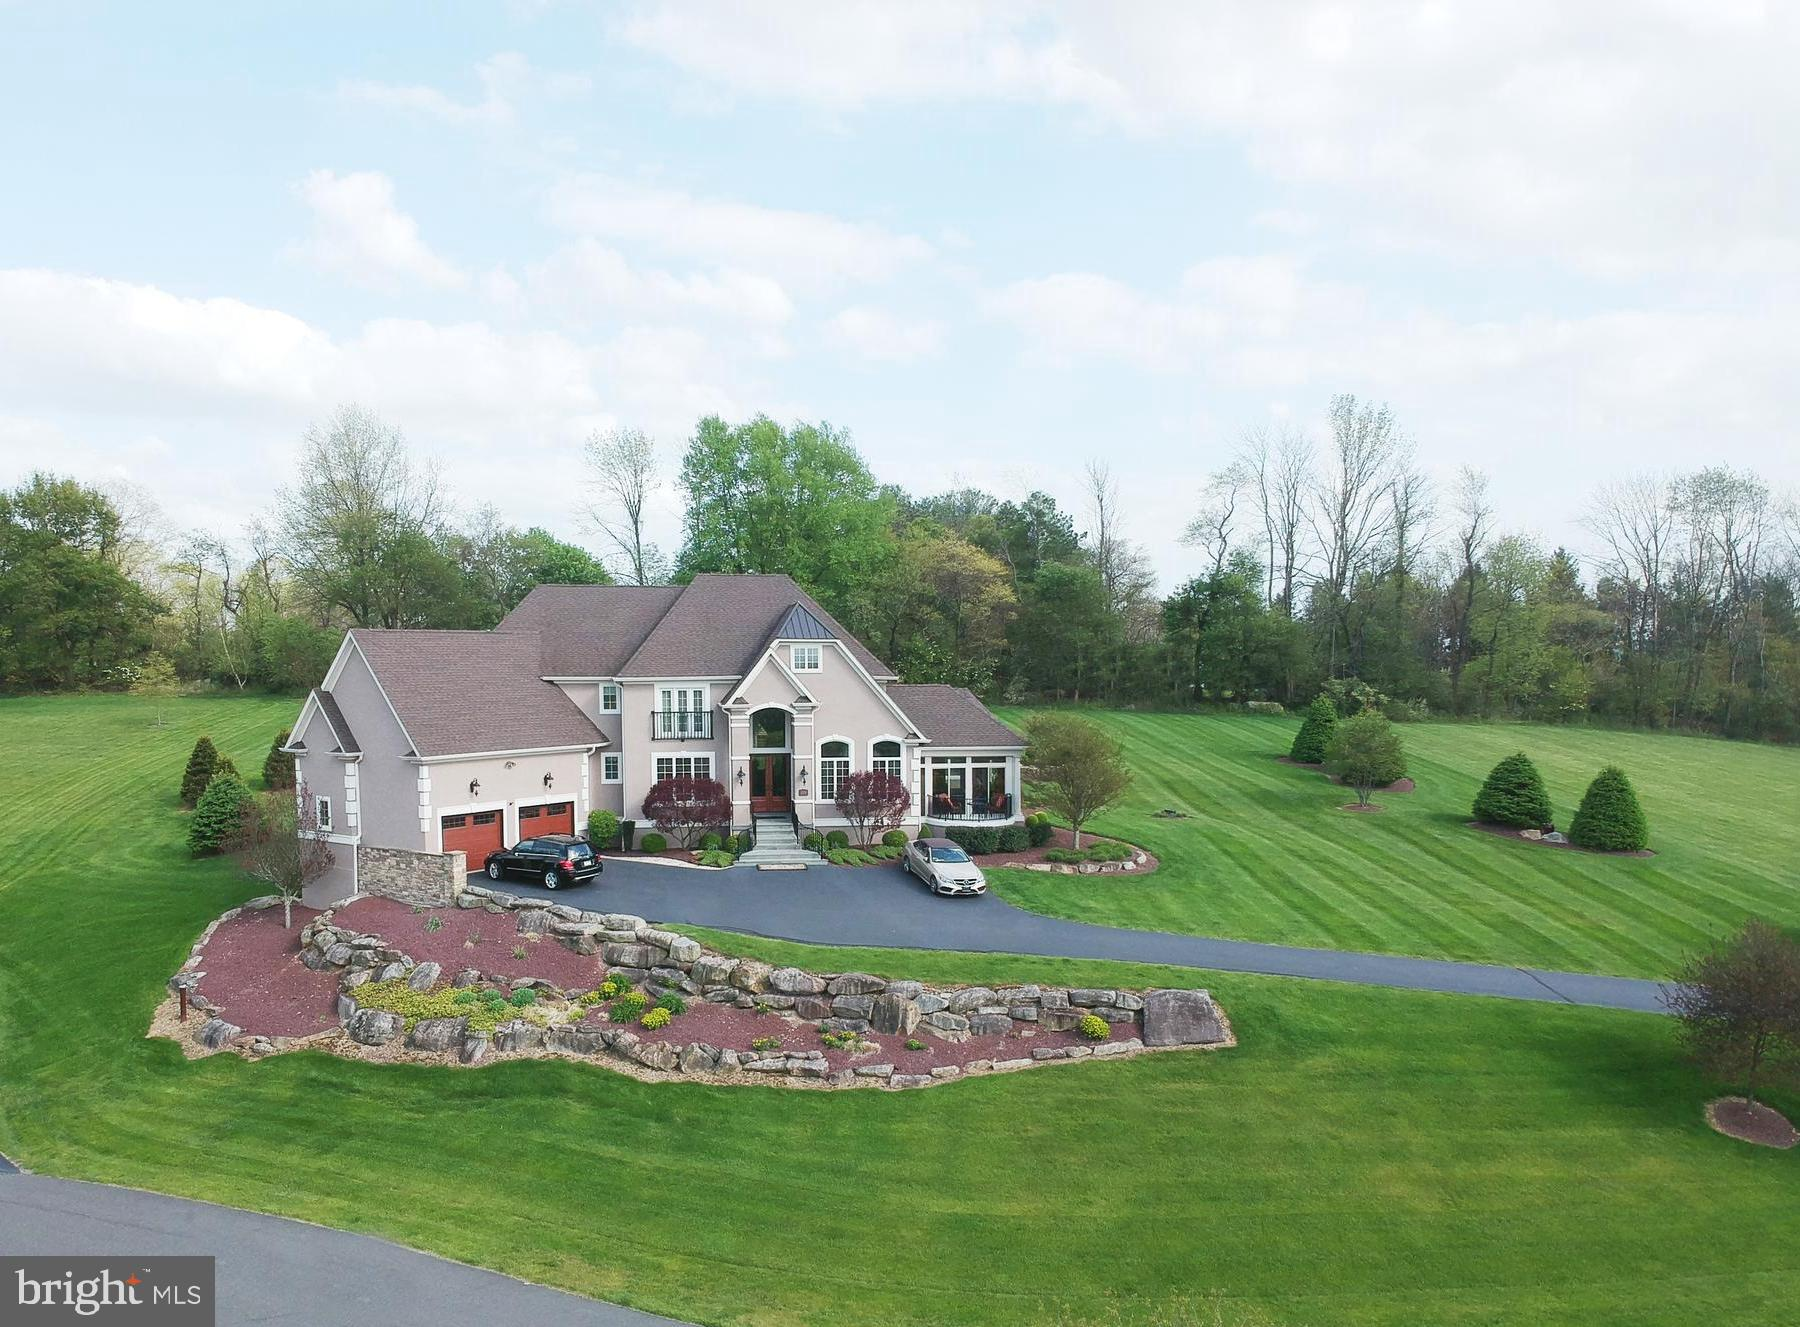 2720 Imperial Crest Lane, Hellertown, PA 18055